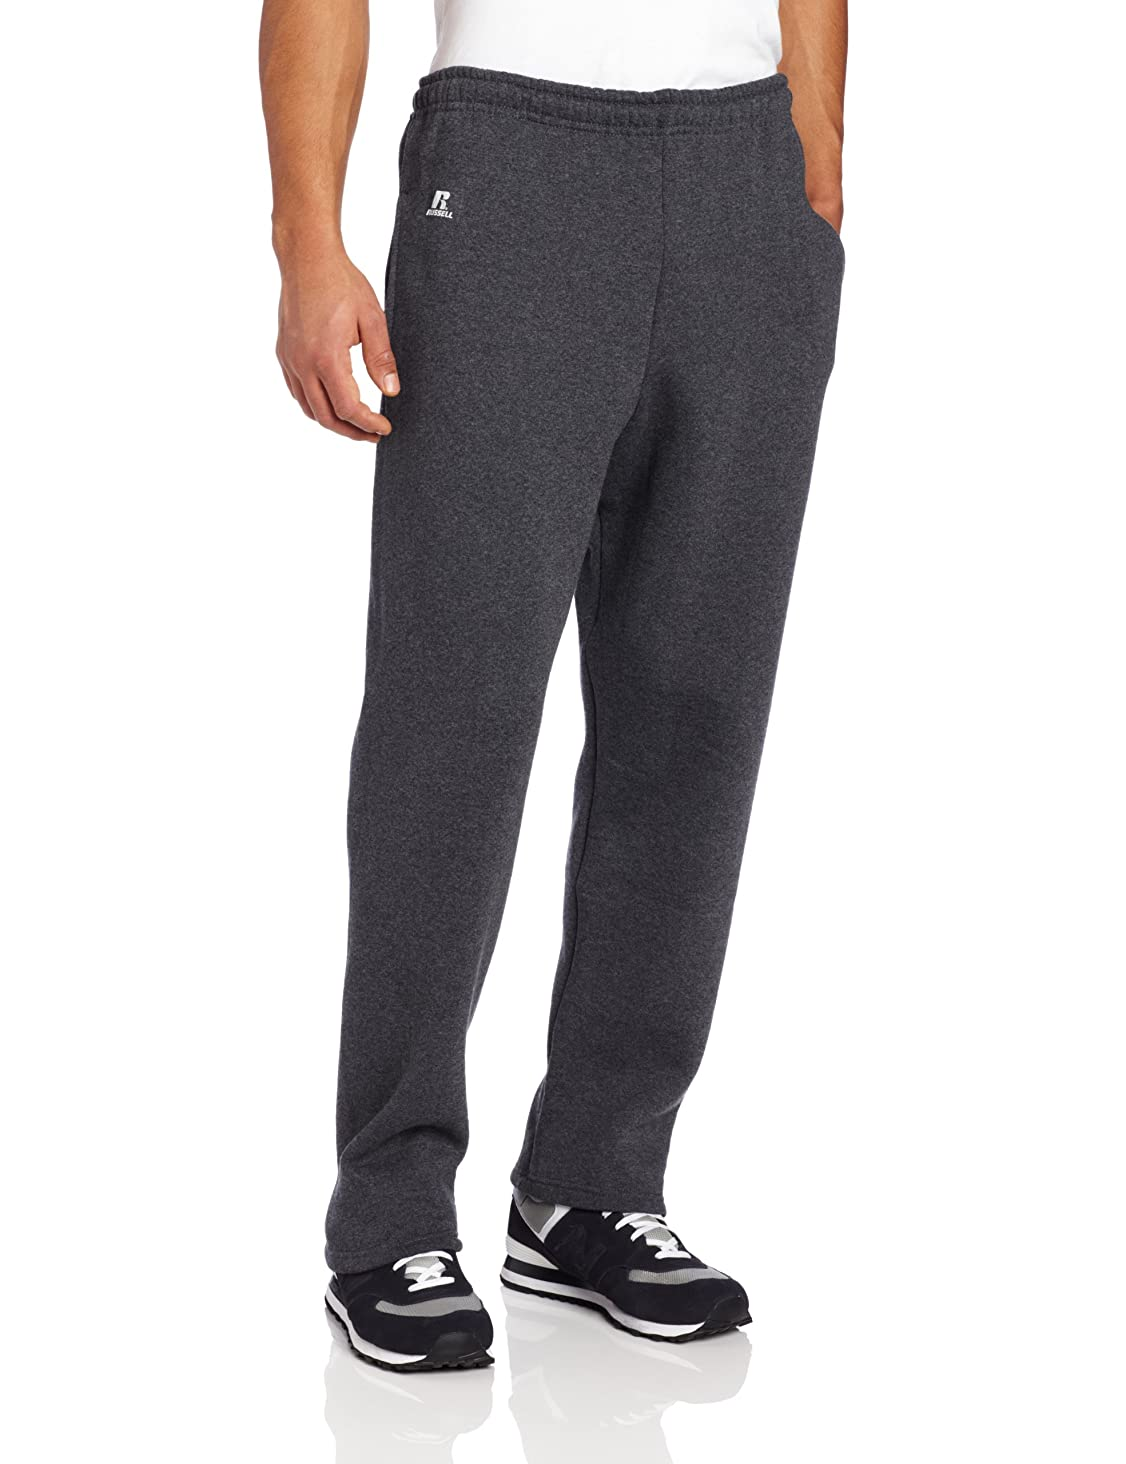 Russell Athletic Men's Dri-Power Open Bottom Sweatpants with Pockets